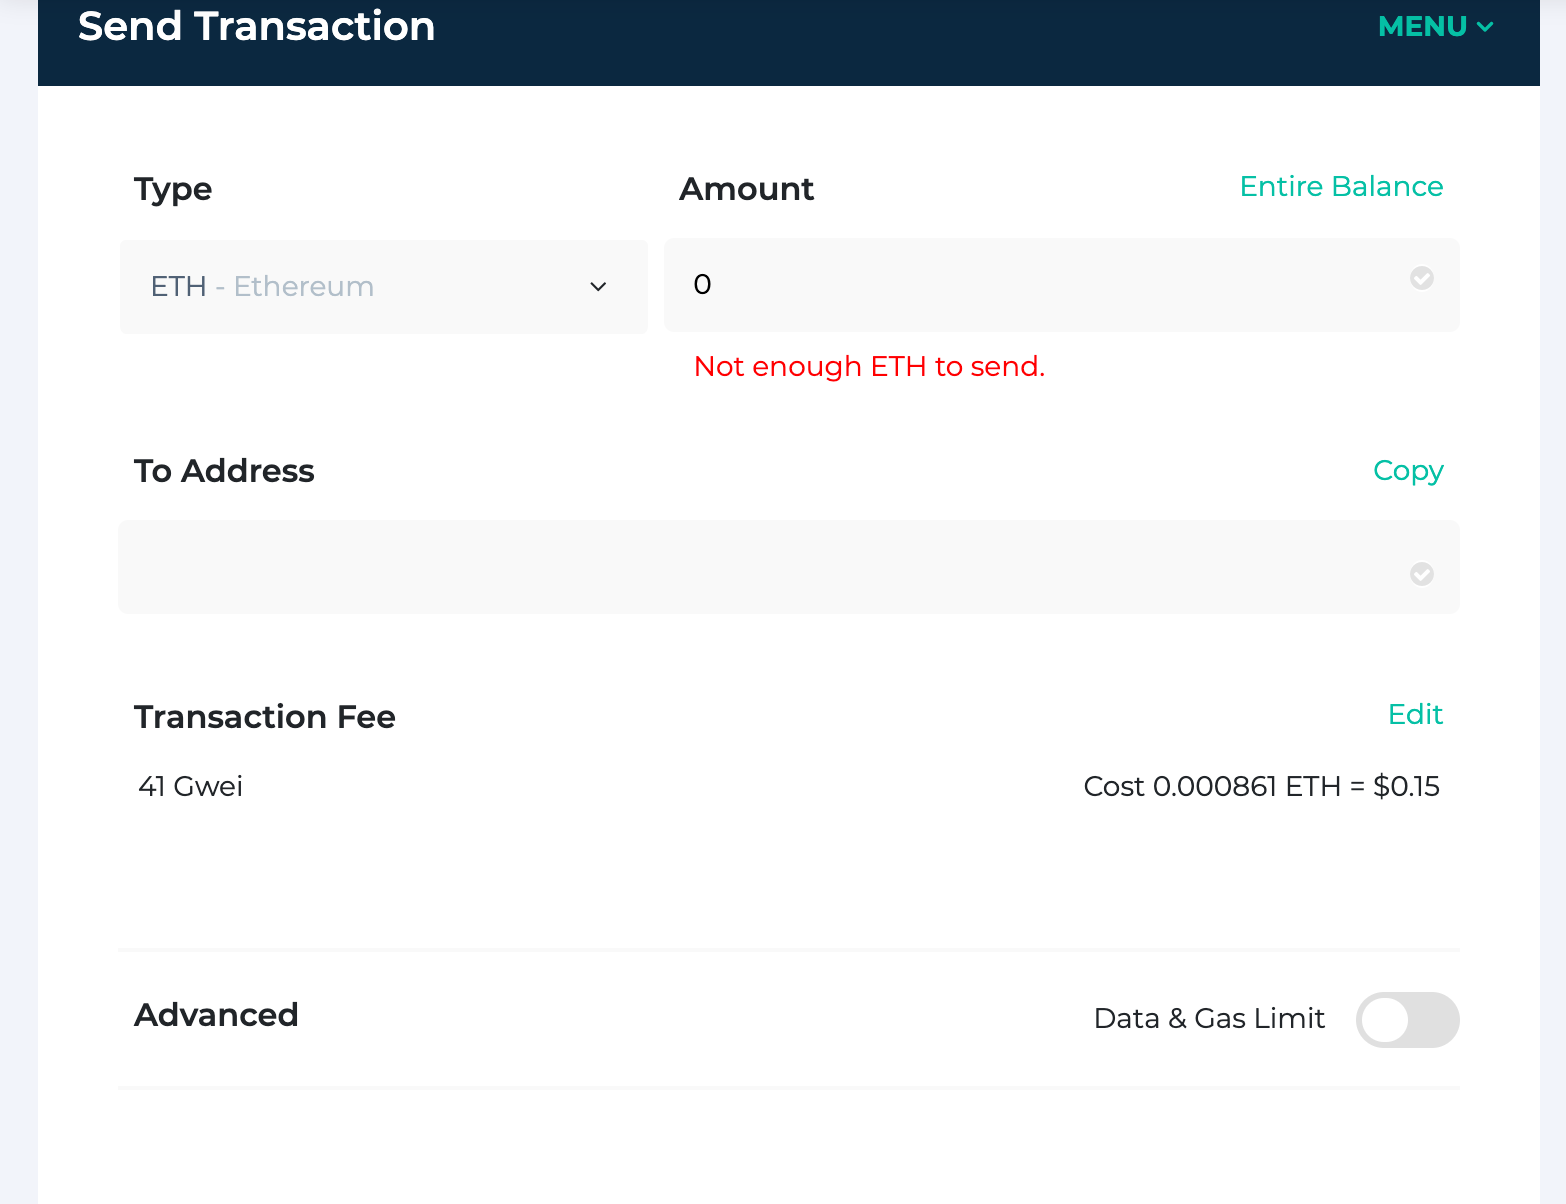 Click 'Edit' across from 'Transaction Fee' on the Send Transaction page.